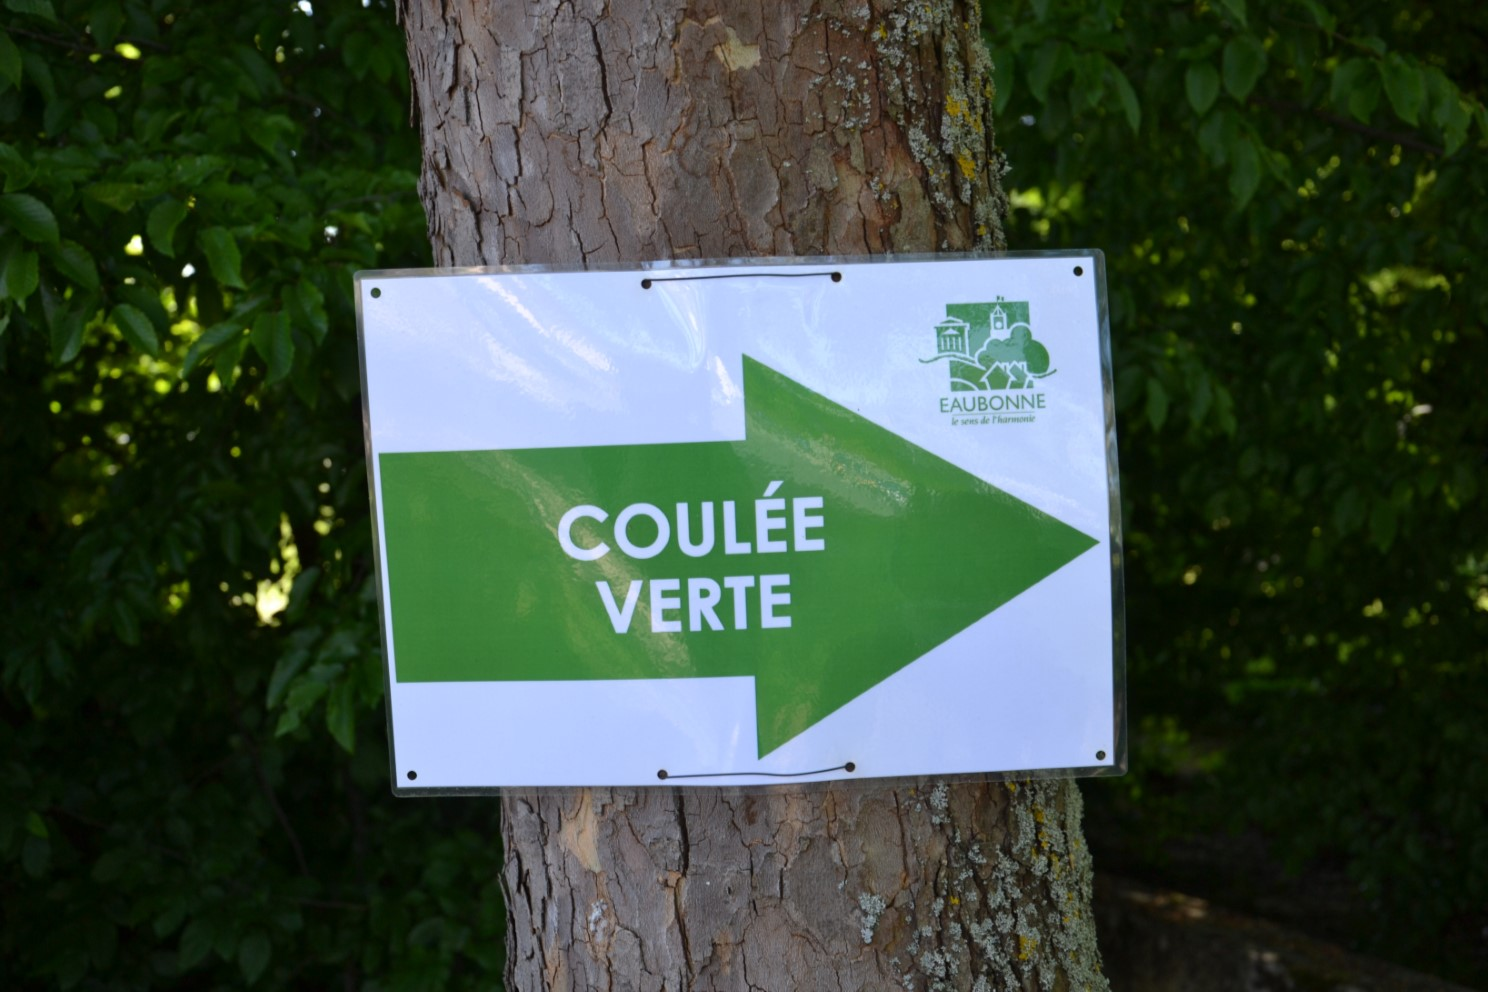 Coulée verte Margency - Eaubonne